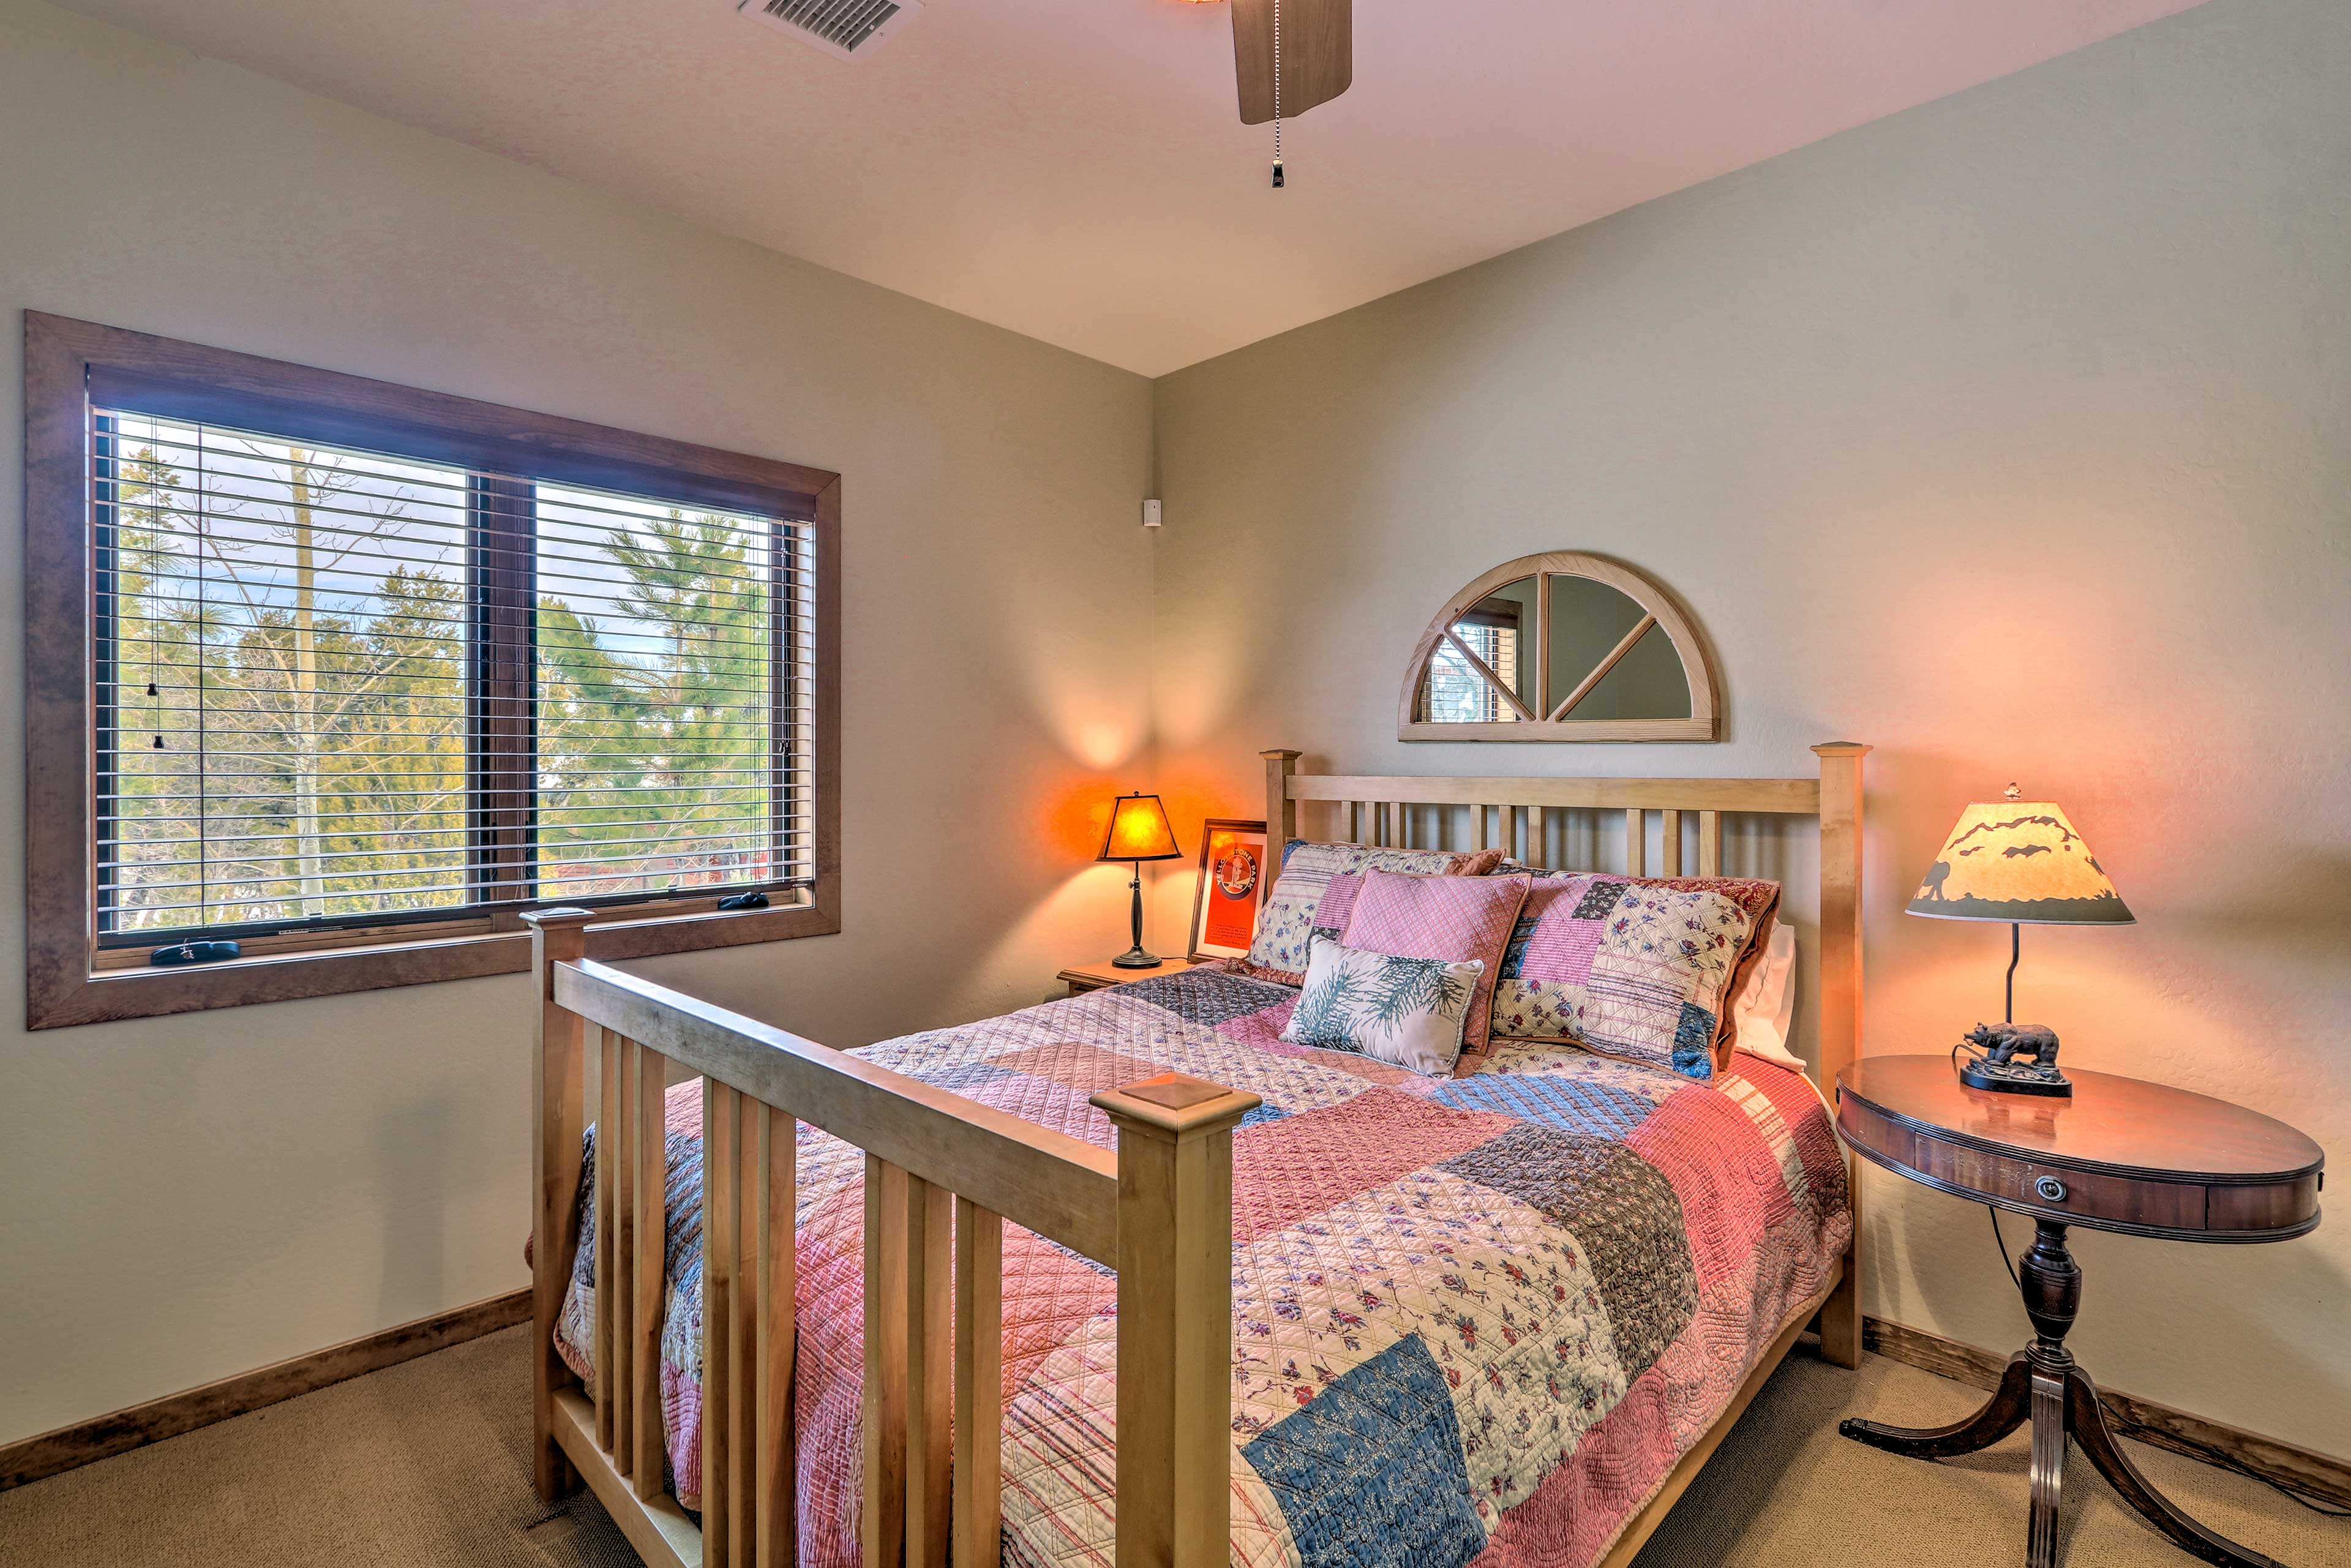 Two of the guest bedrooms feature queen beds.